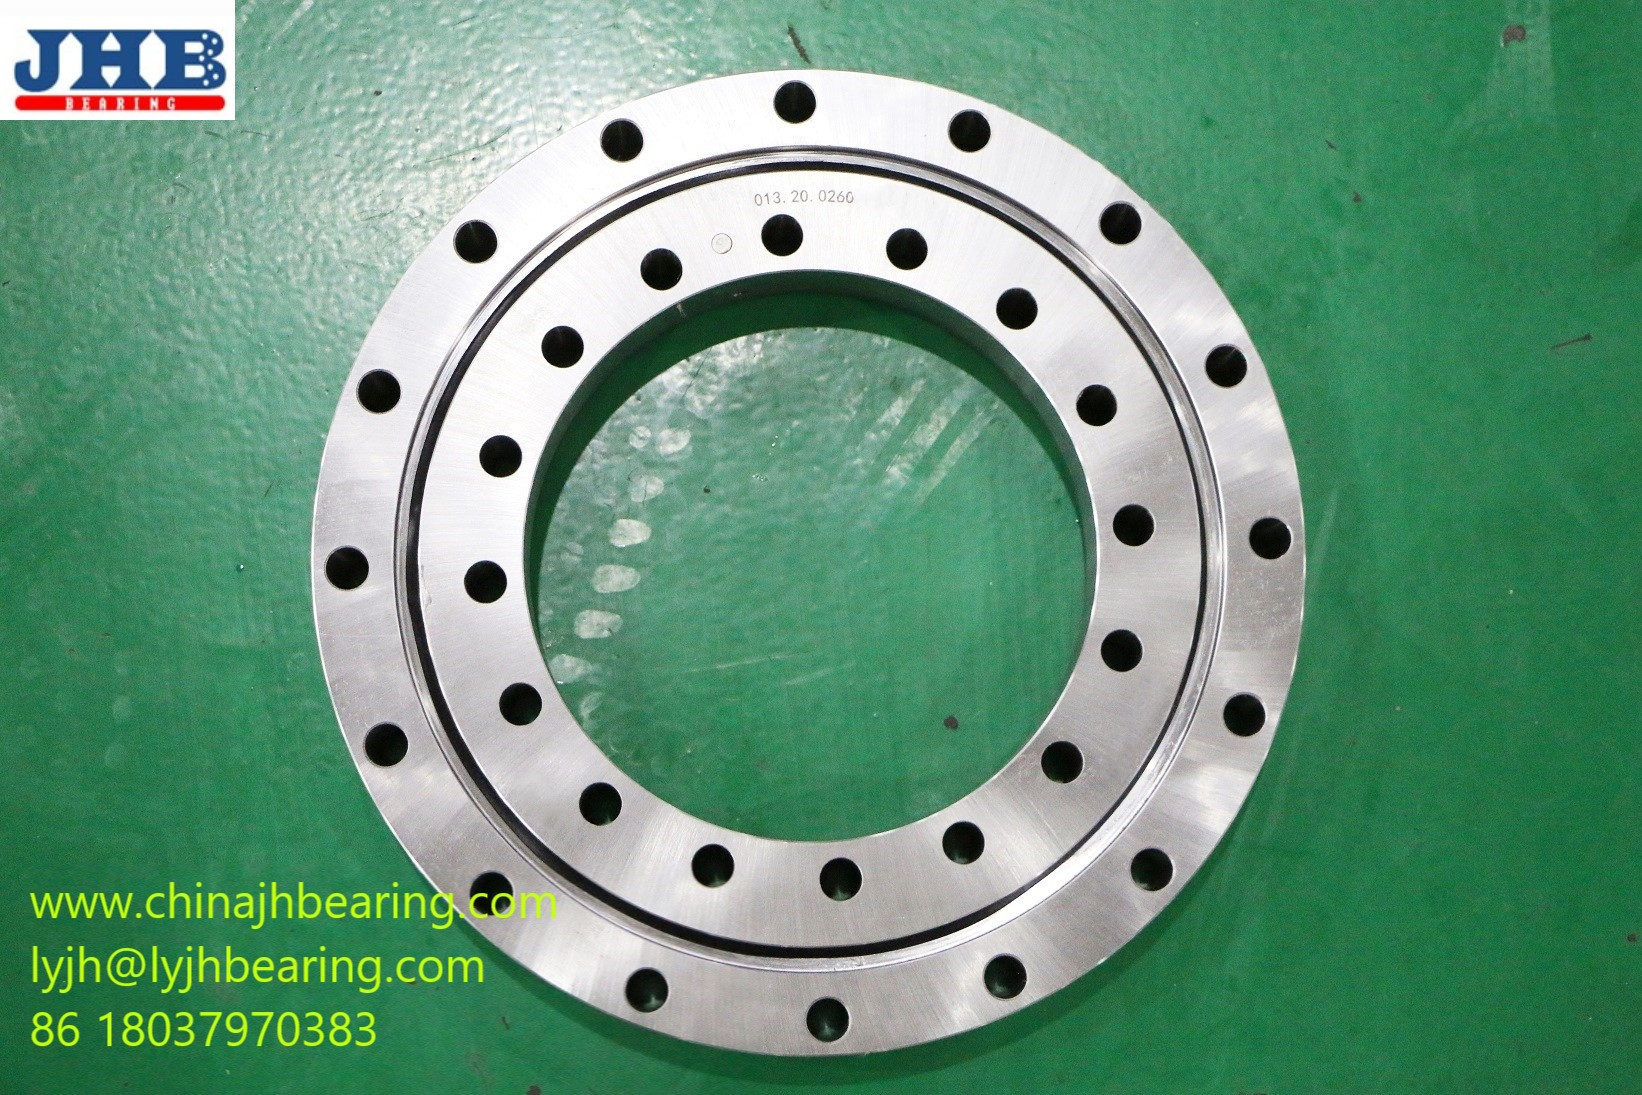 787/1000G2 Slewing bearing 1000x1250x100mm for stacker track swivel equipment